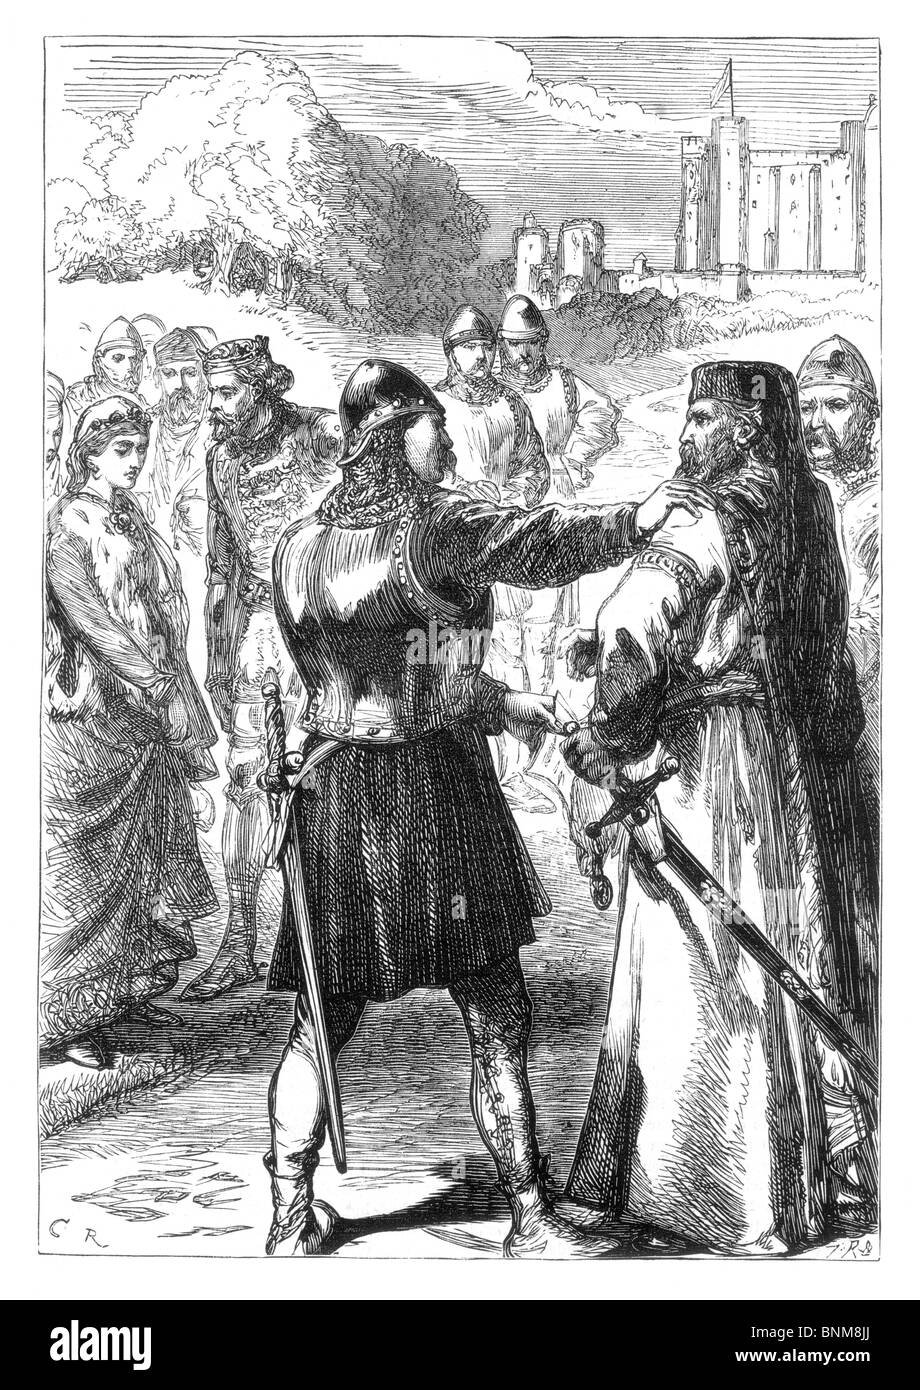 Black and White Illustration of the Arrest of the Duke of Gloucester, July 1387 during the tyranny of King Richard - Stock Image